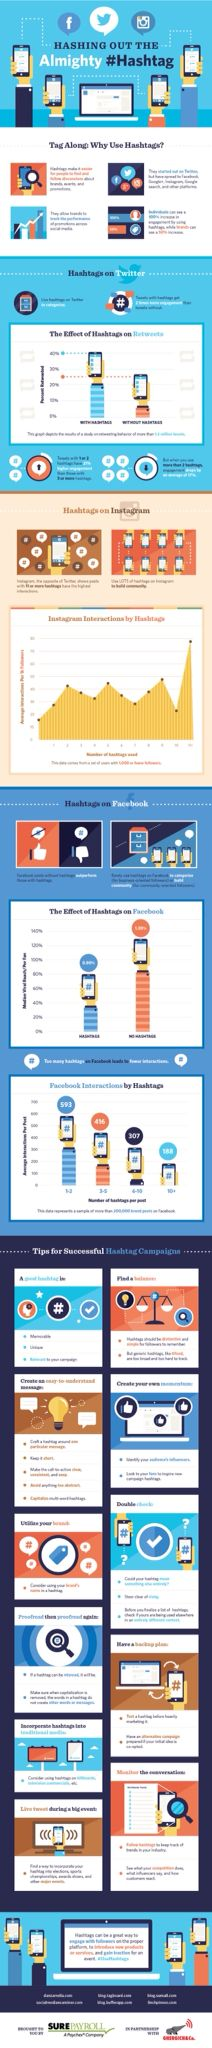 #Tips for a #Successful #Hashtag #Campaign on #Facebook, #Twitter and #Instagram // #HowTo use hashtags // #Why you should use hashtags on #SocialMedia // #Infographic // @FormulaSean